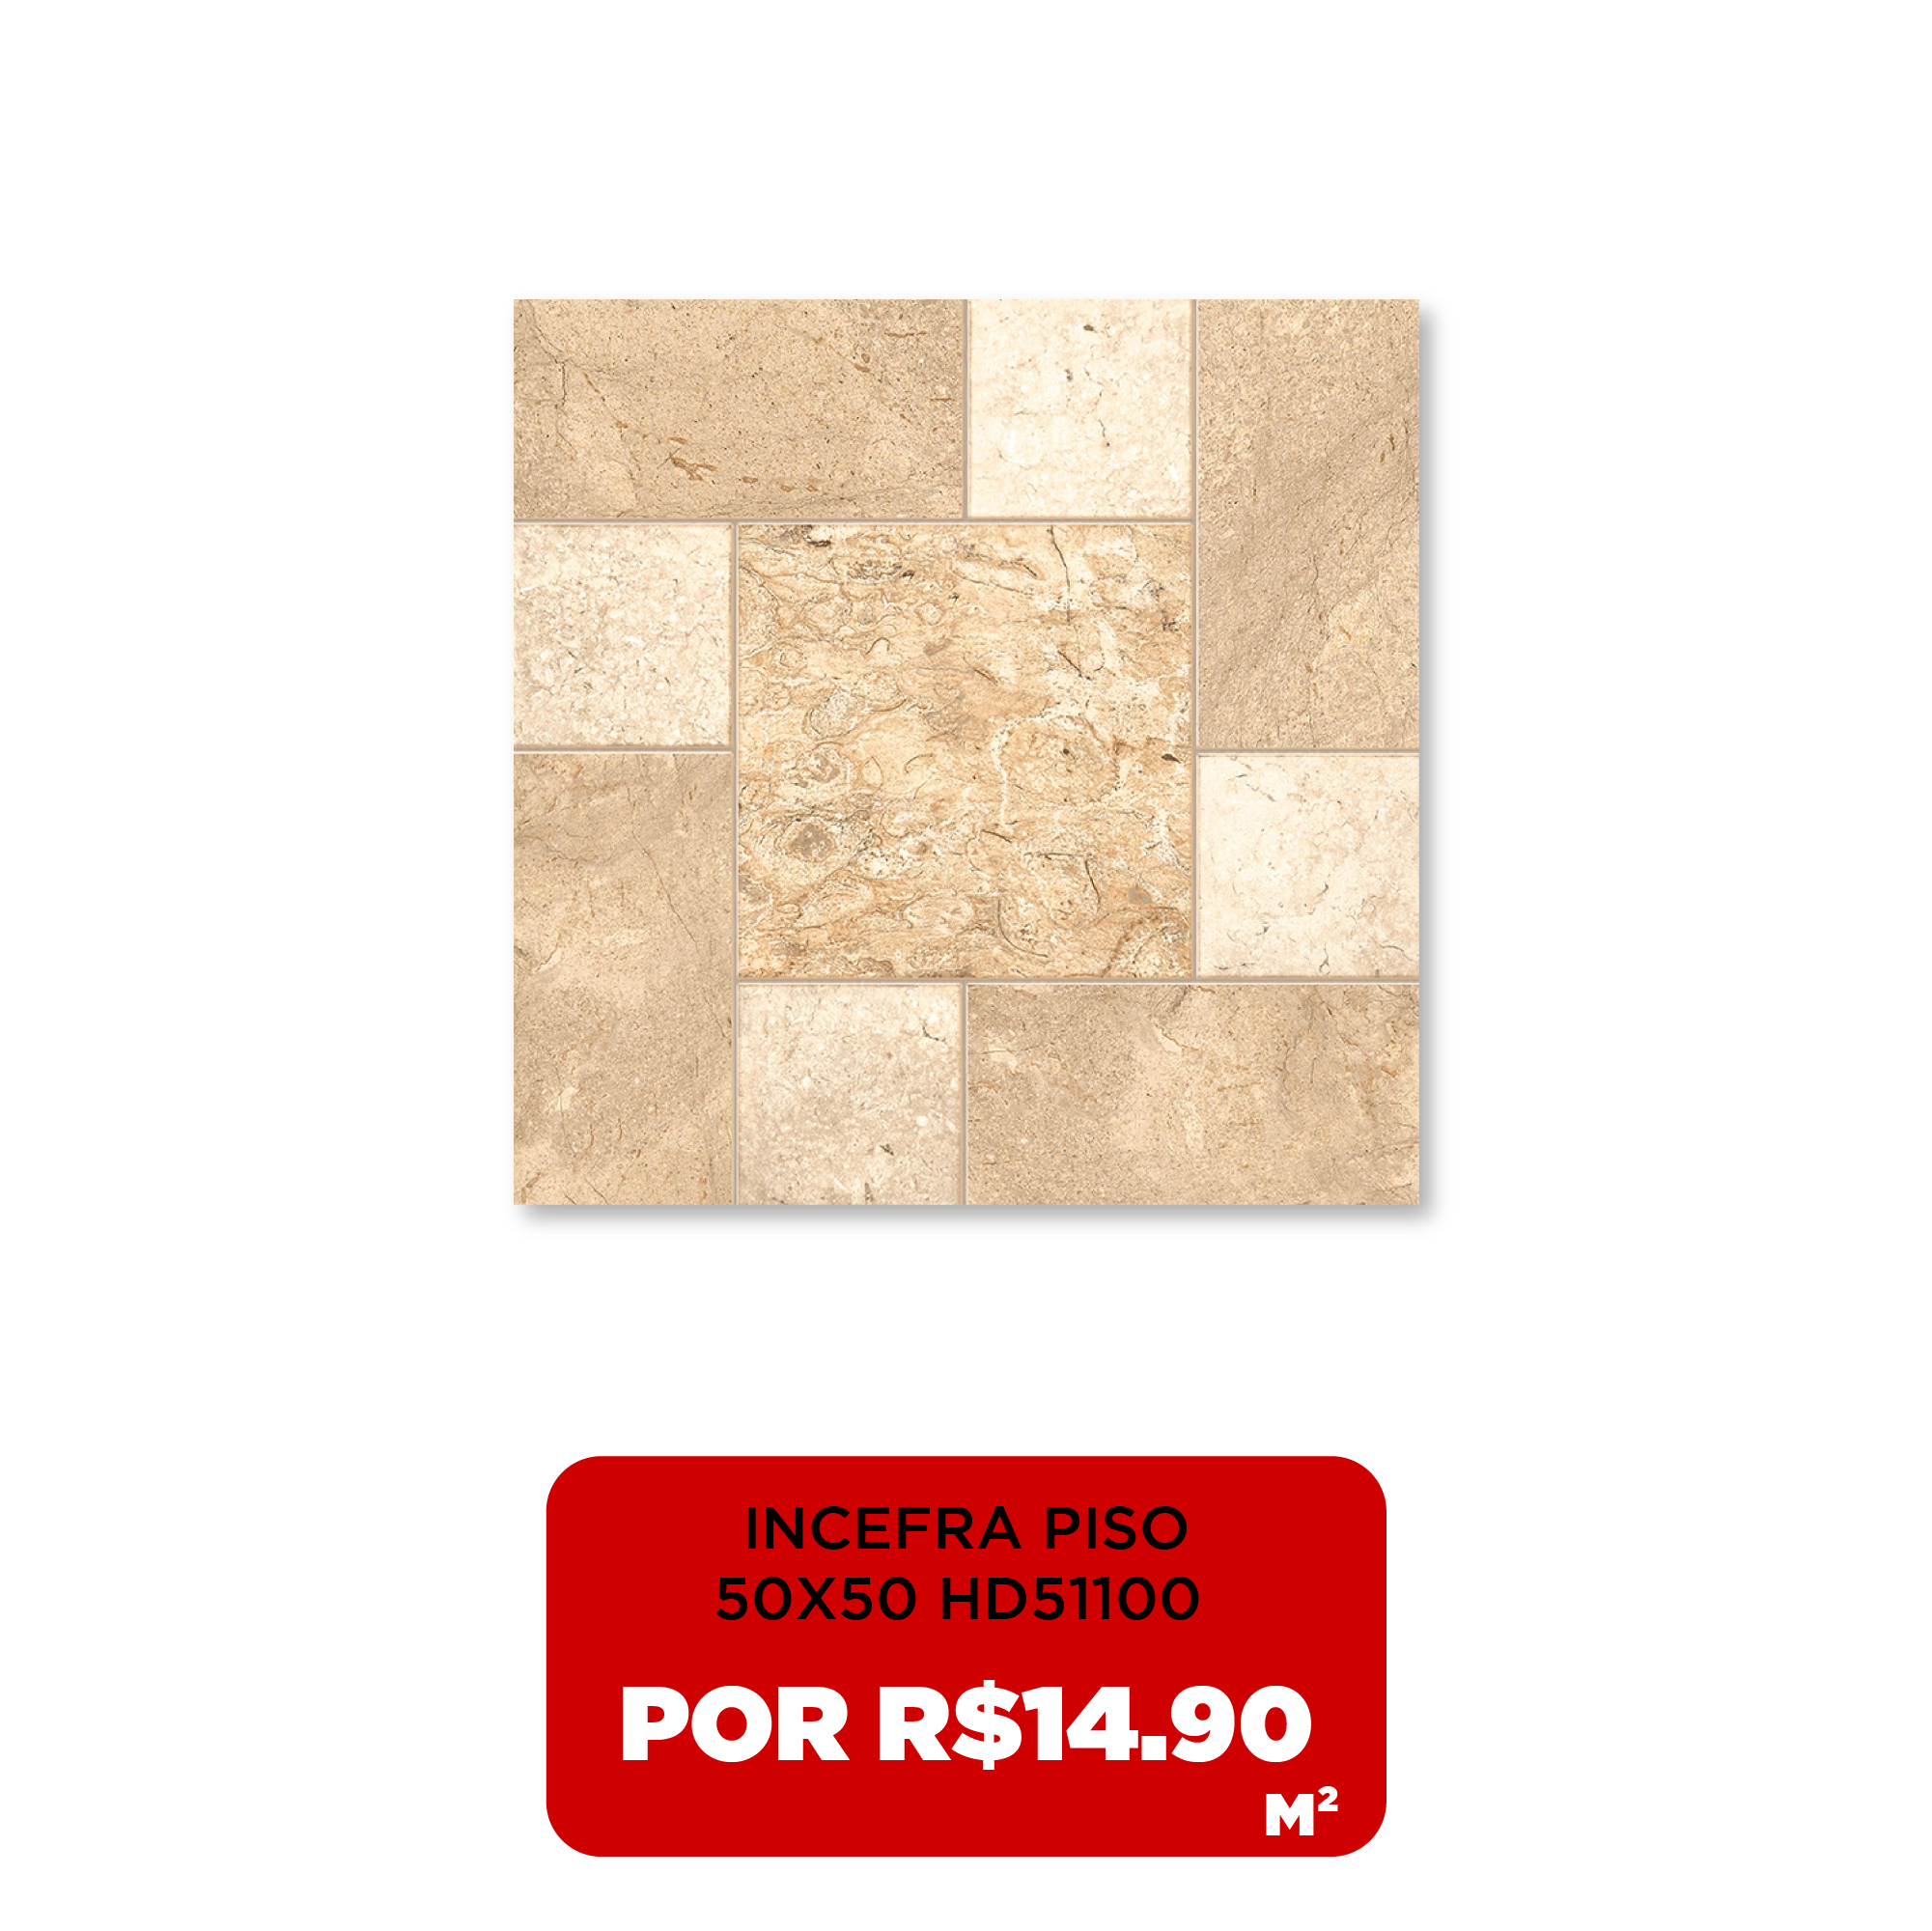 INCEFRA PISO 50X50 HD51100